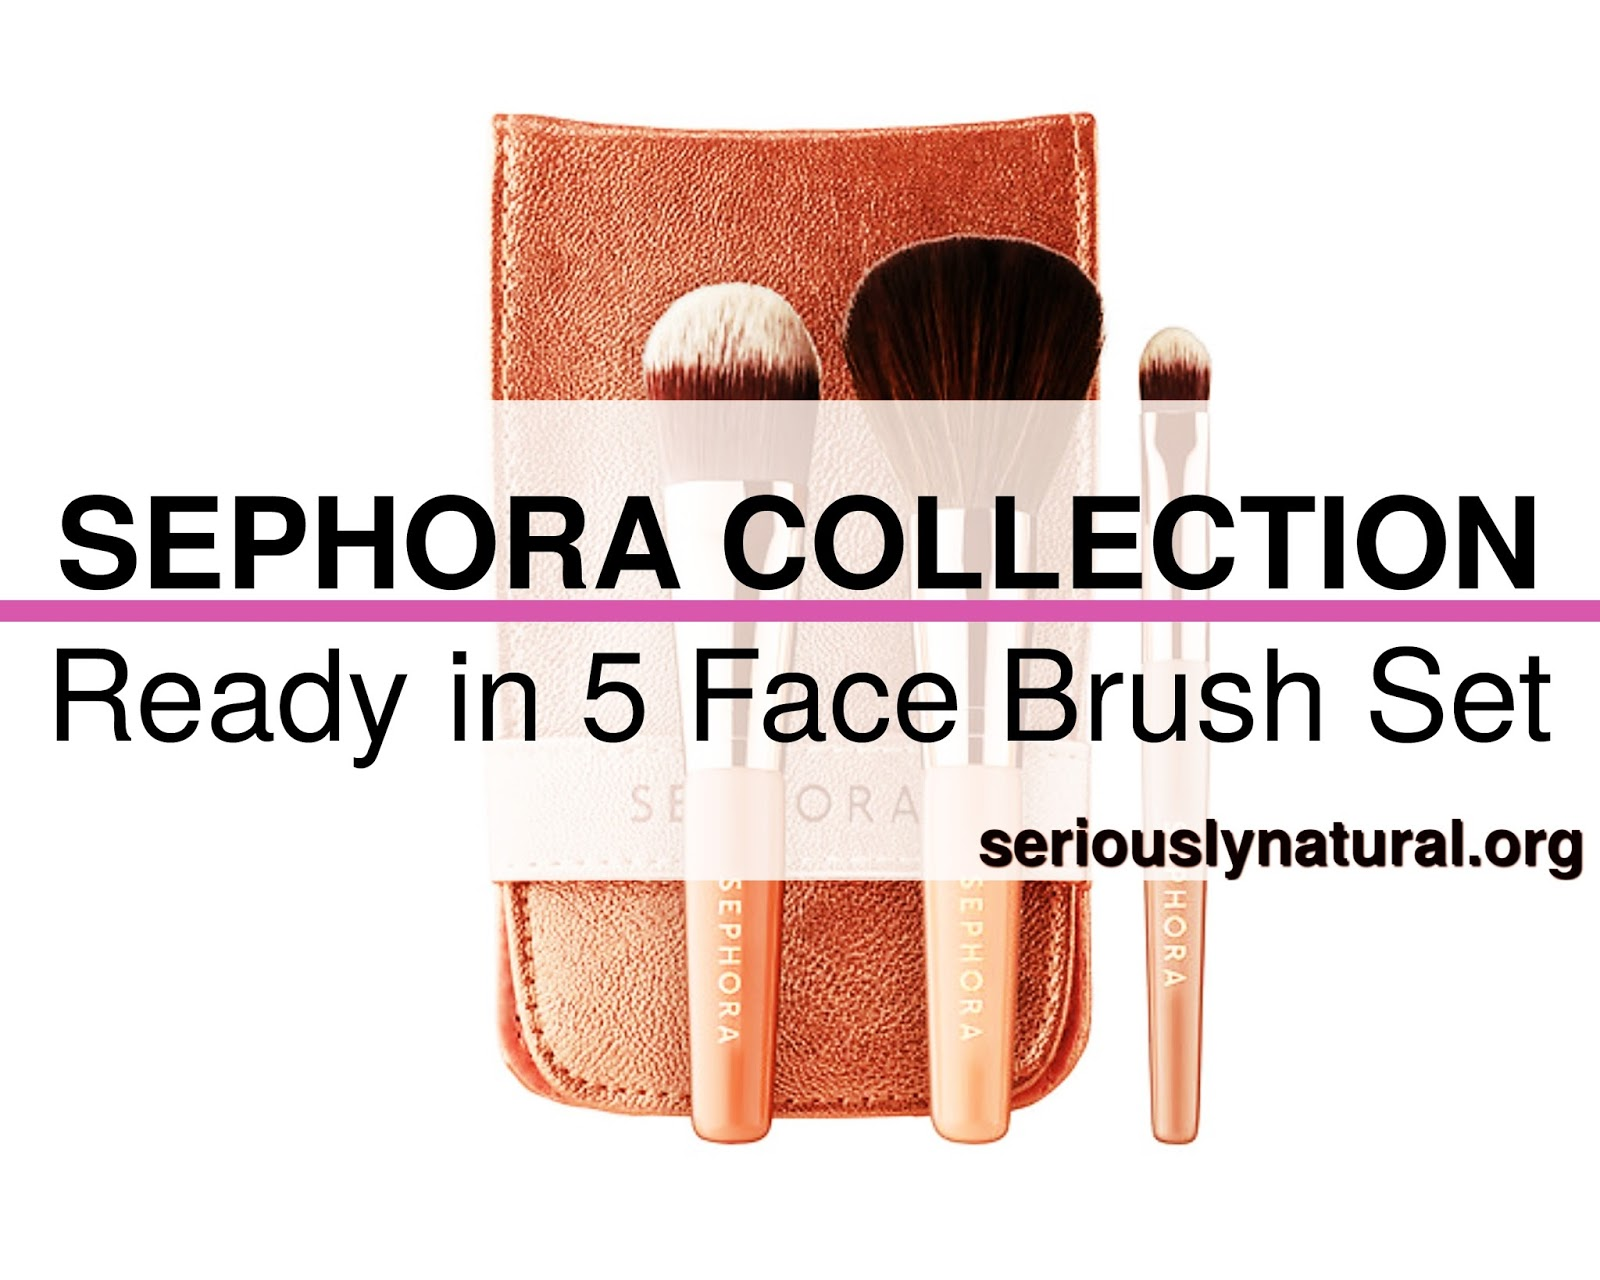 Sephora is made for women and all their beauty needs so I wanted to share some of the best makeup brands and items I love from this retail chain.